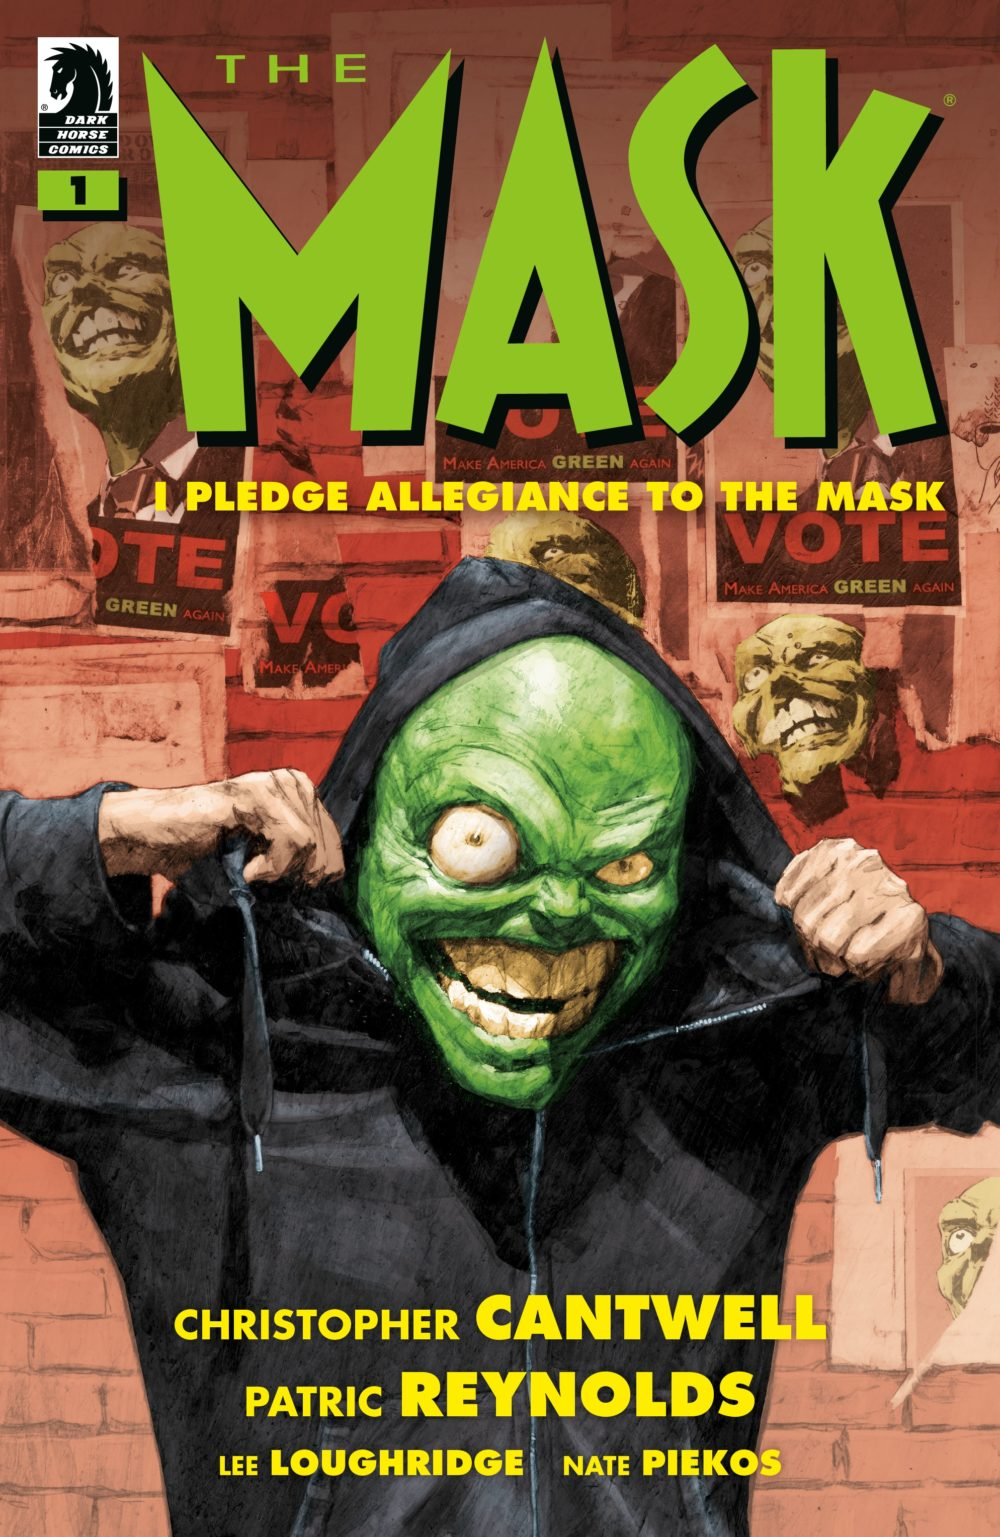 The Mask: I Pledge Allegiance To The Mask #1 – Review